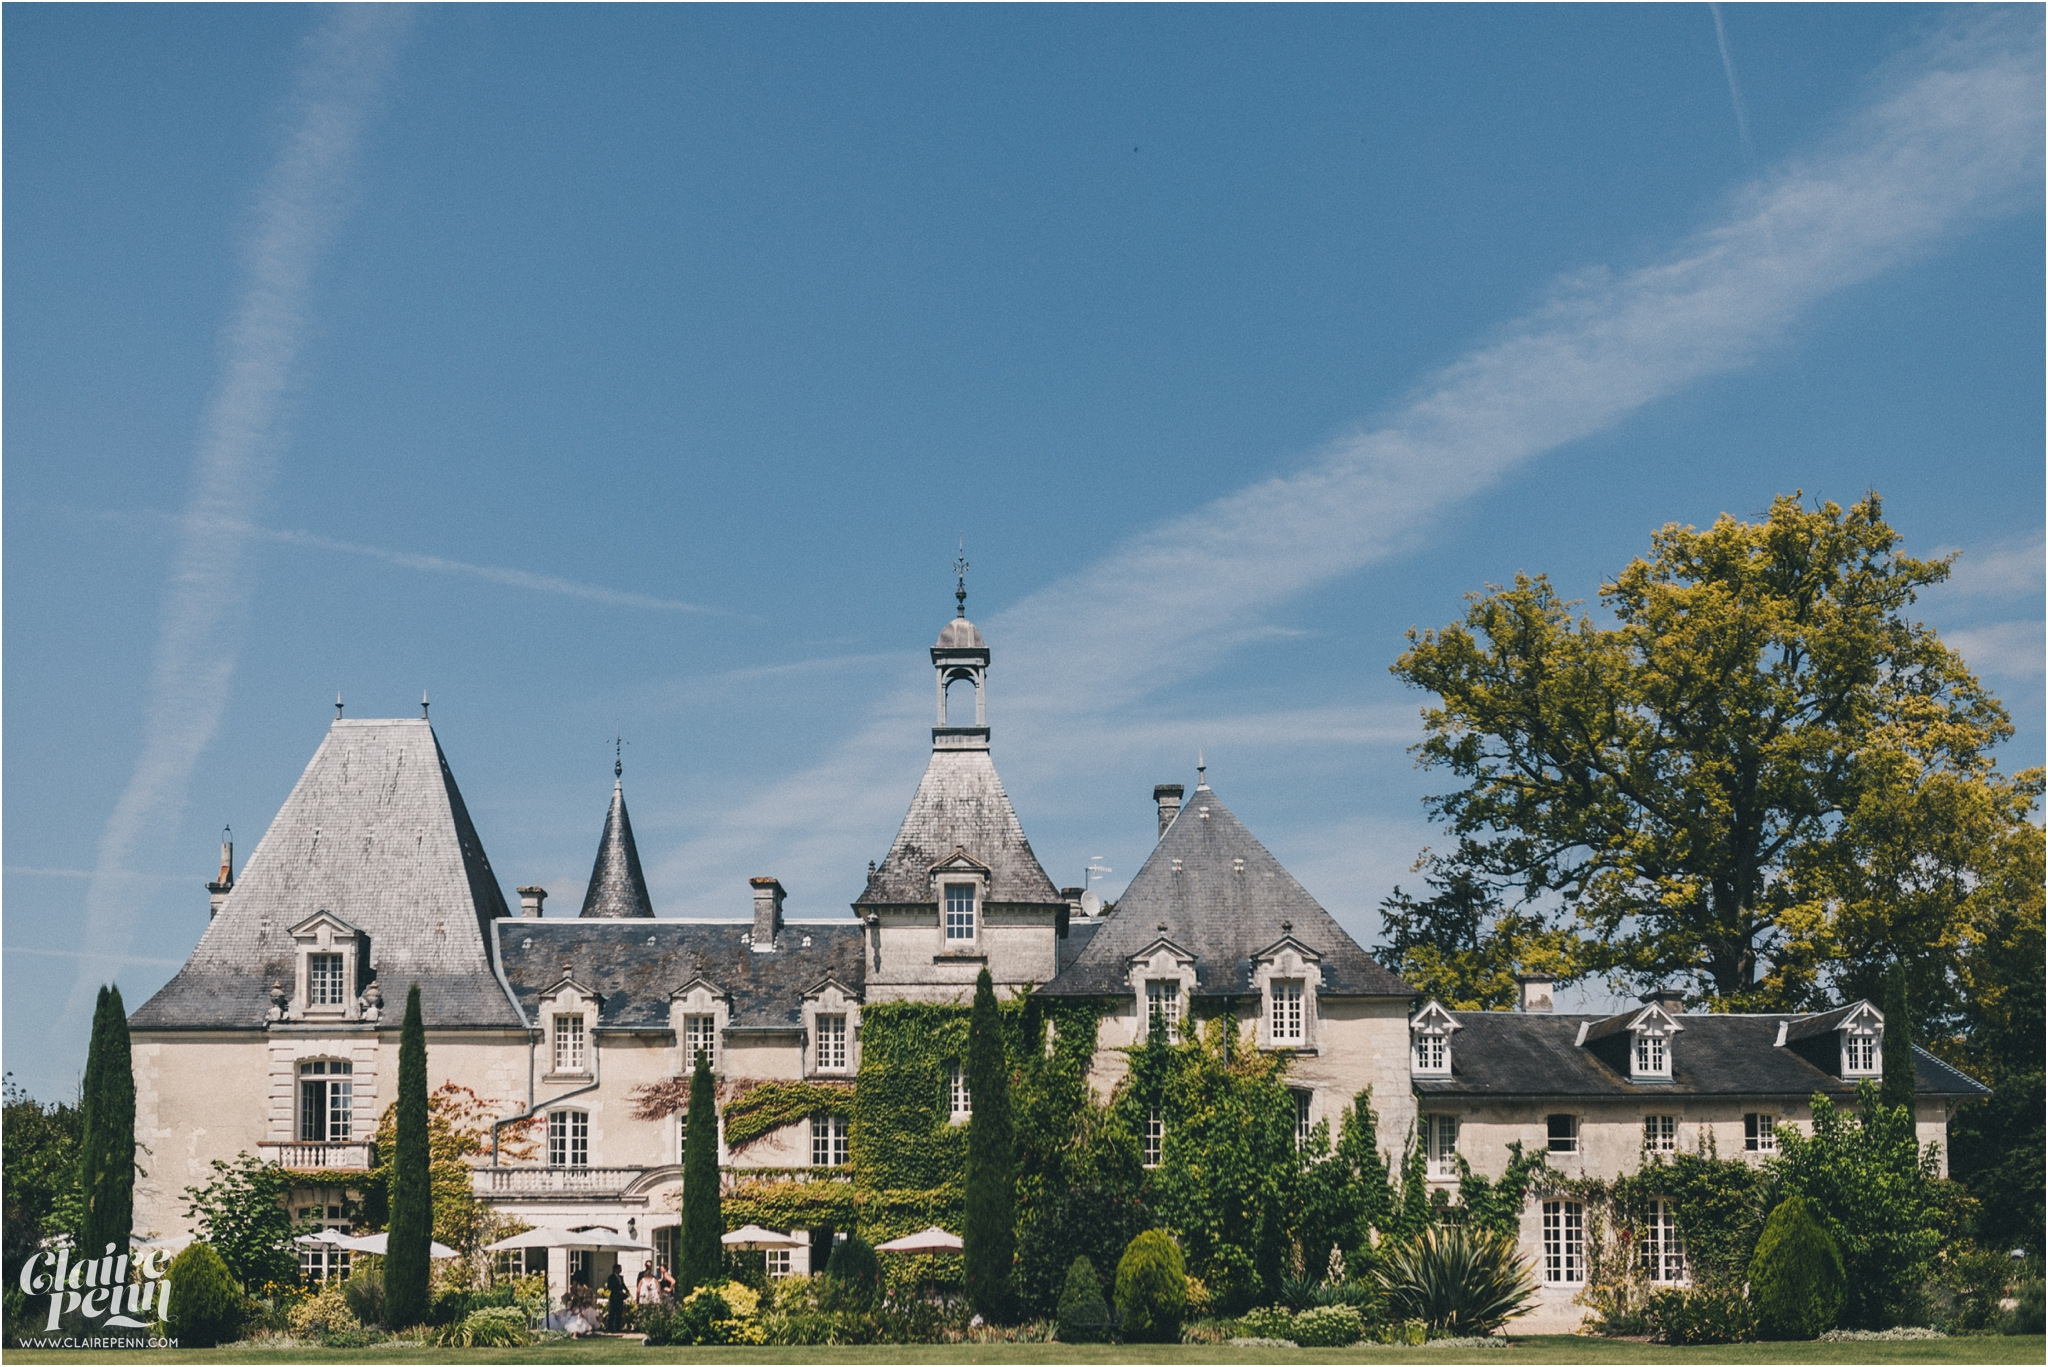 Le Chateau Charmant wedding Dordogne France_0001.jpg